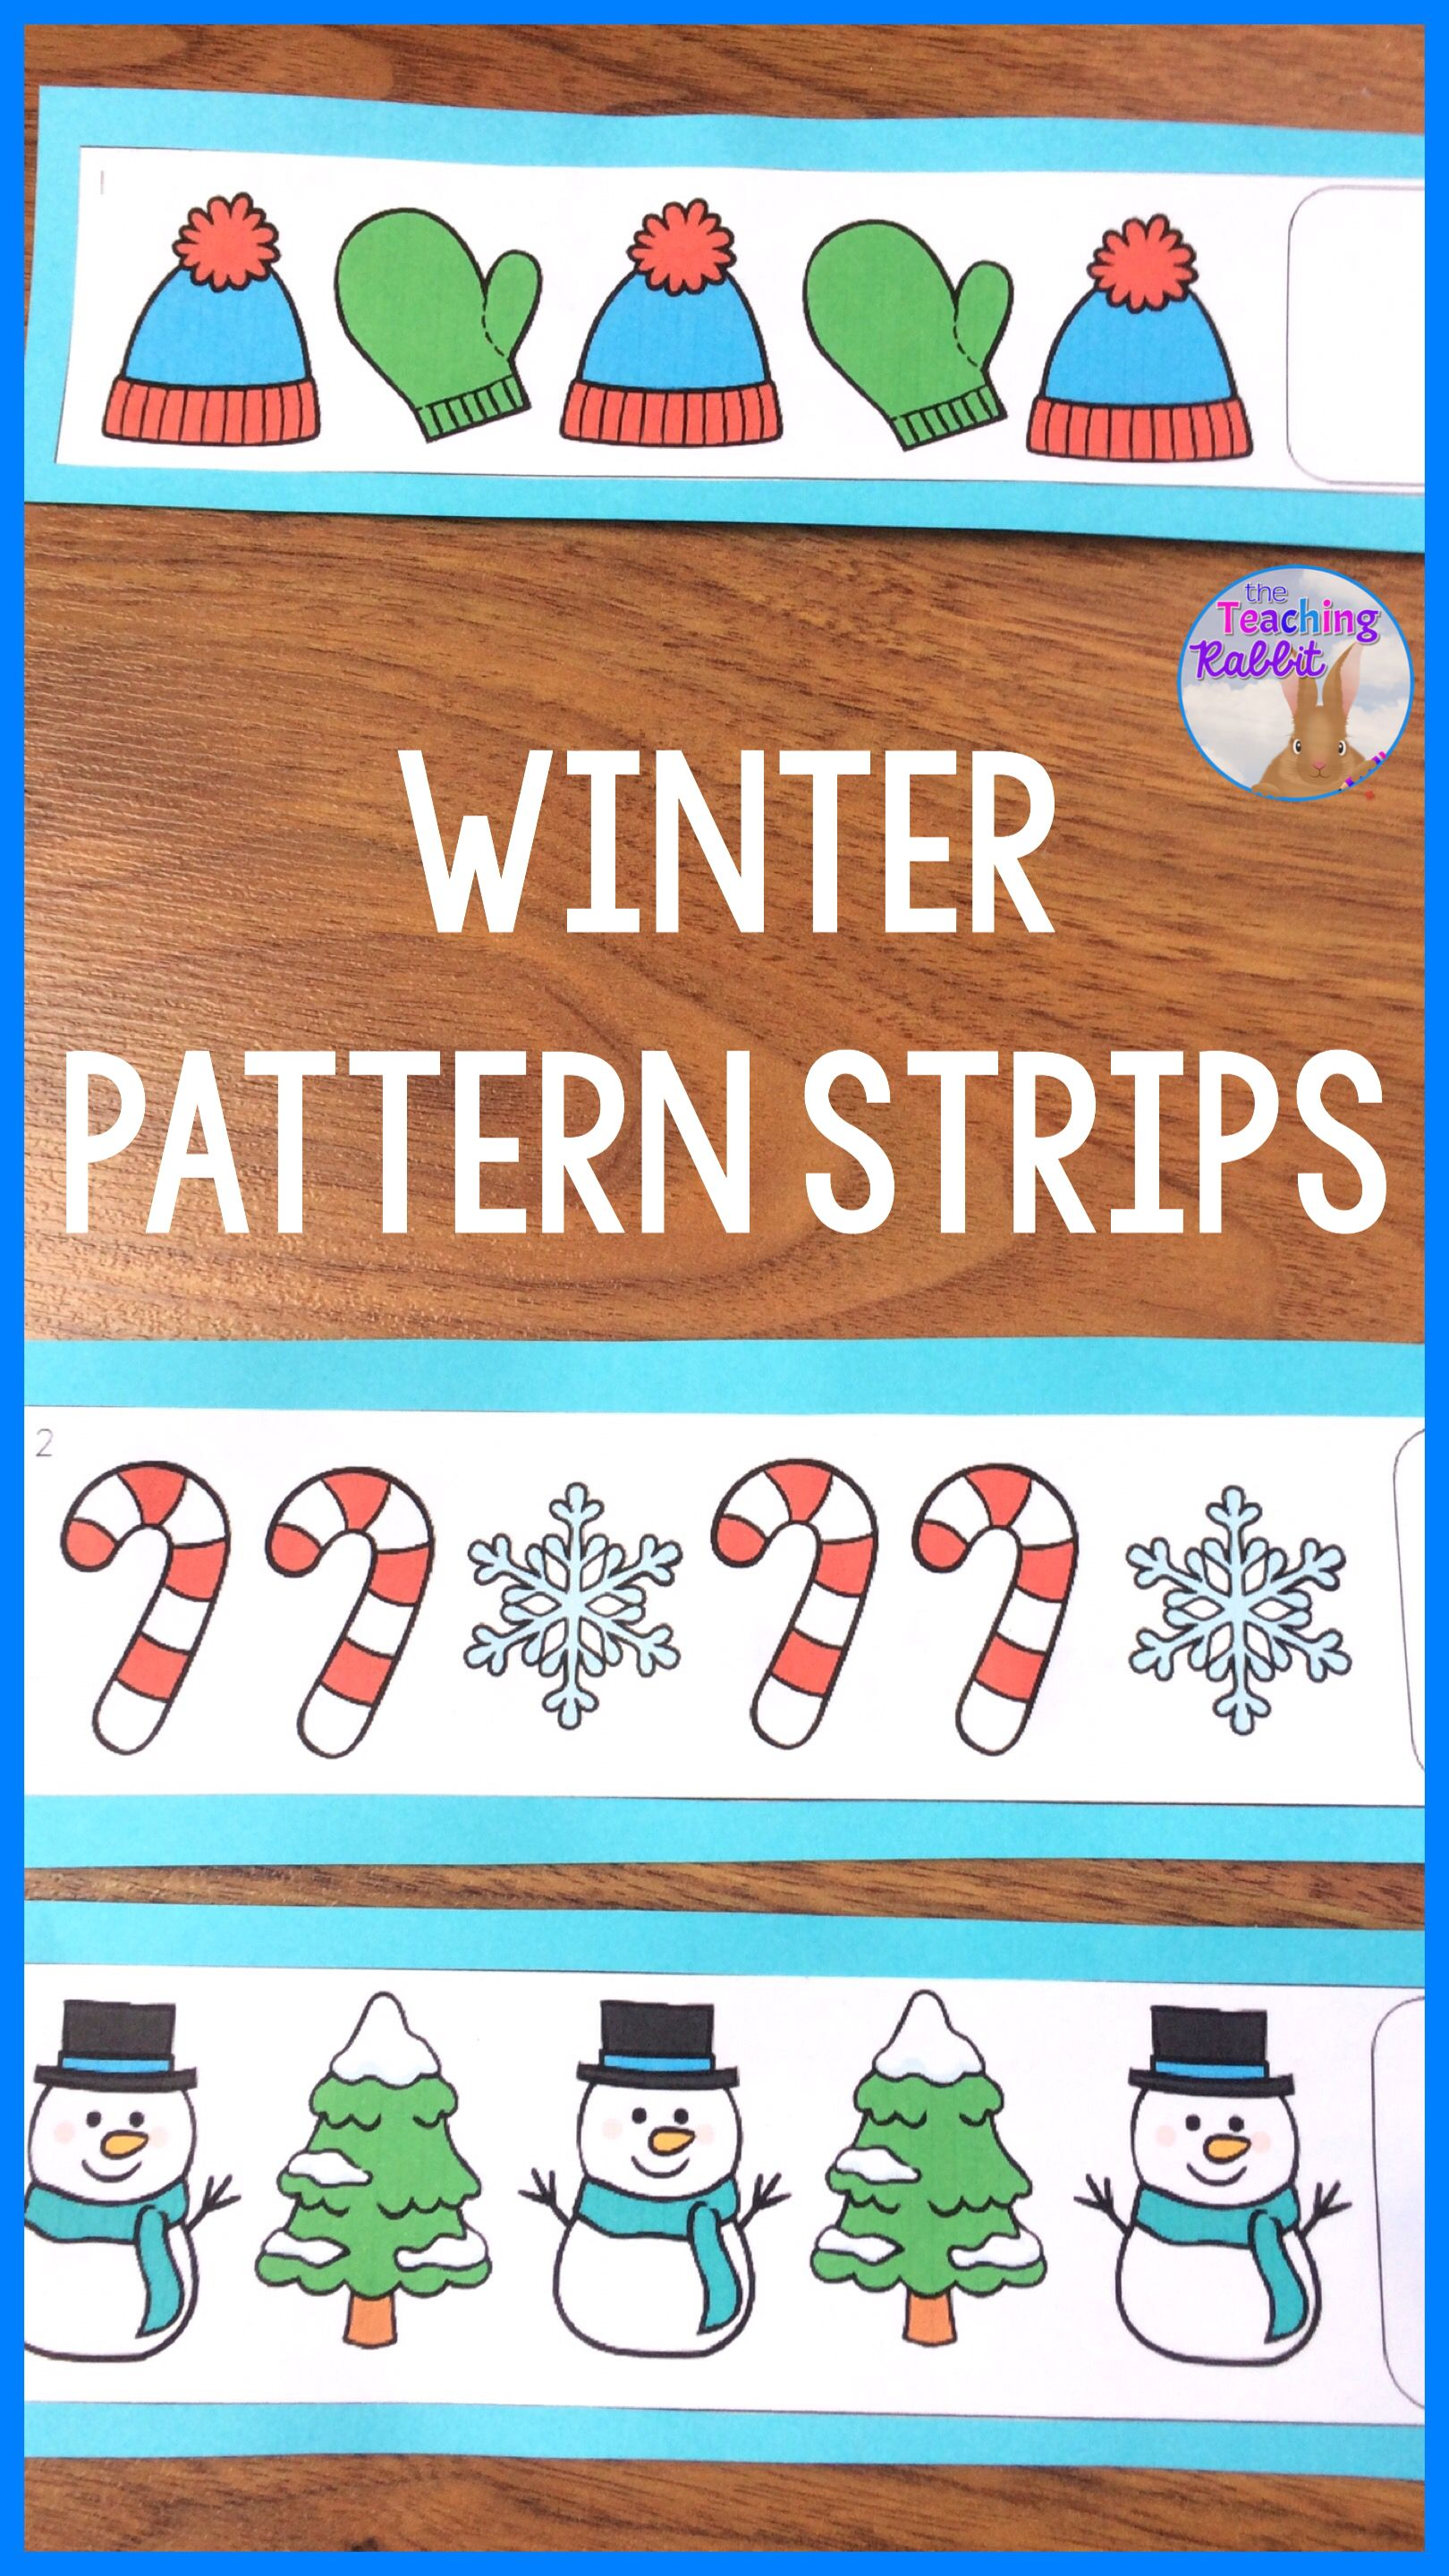 Winter Pattern Strips Center